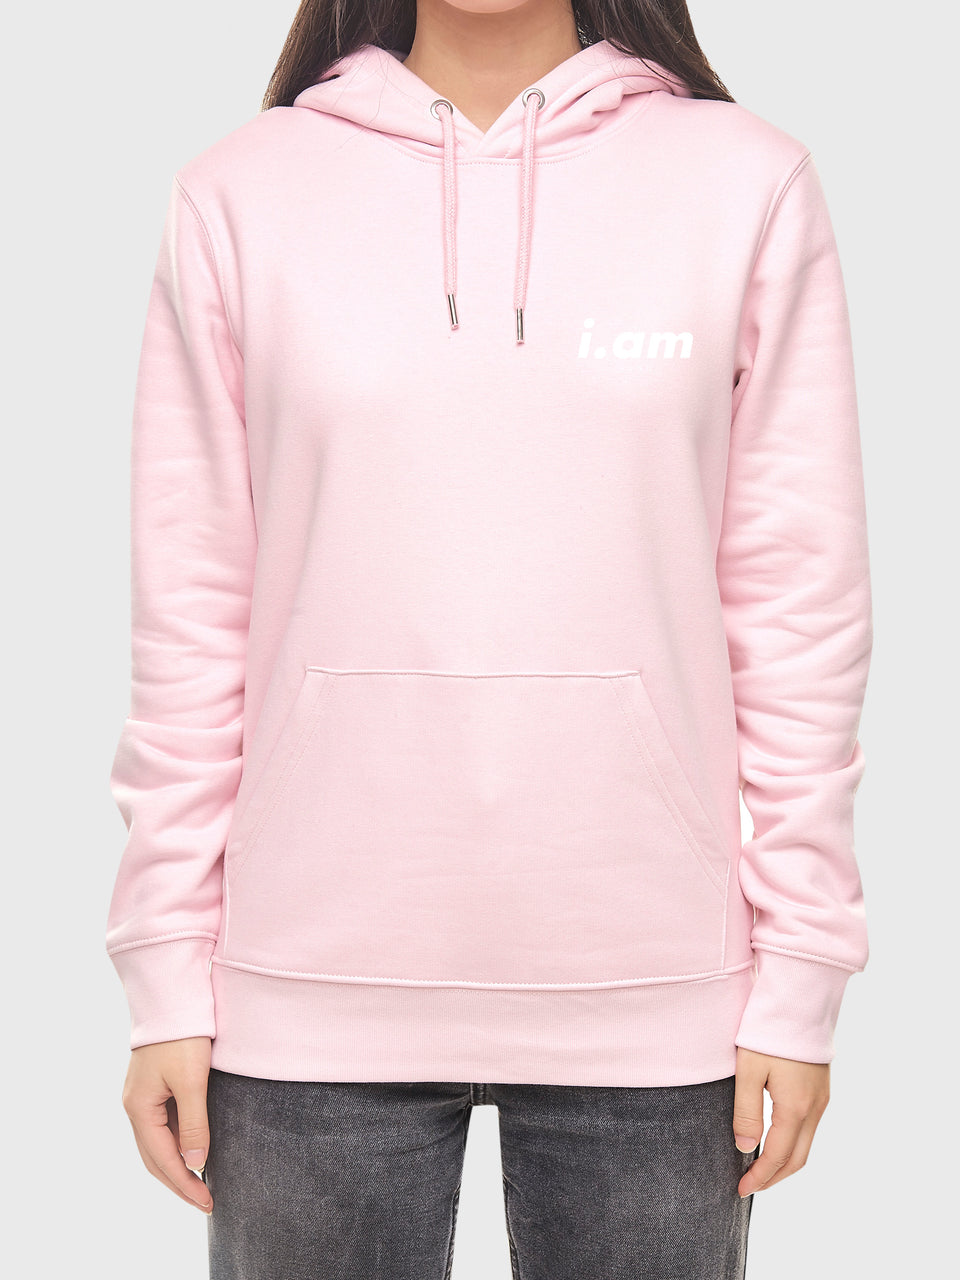 I am who I am - Pink - Unisex pull over hoodie